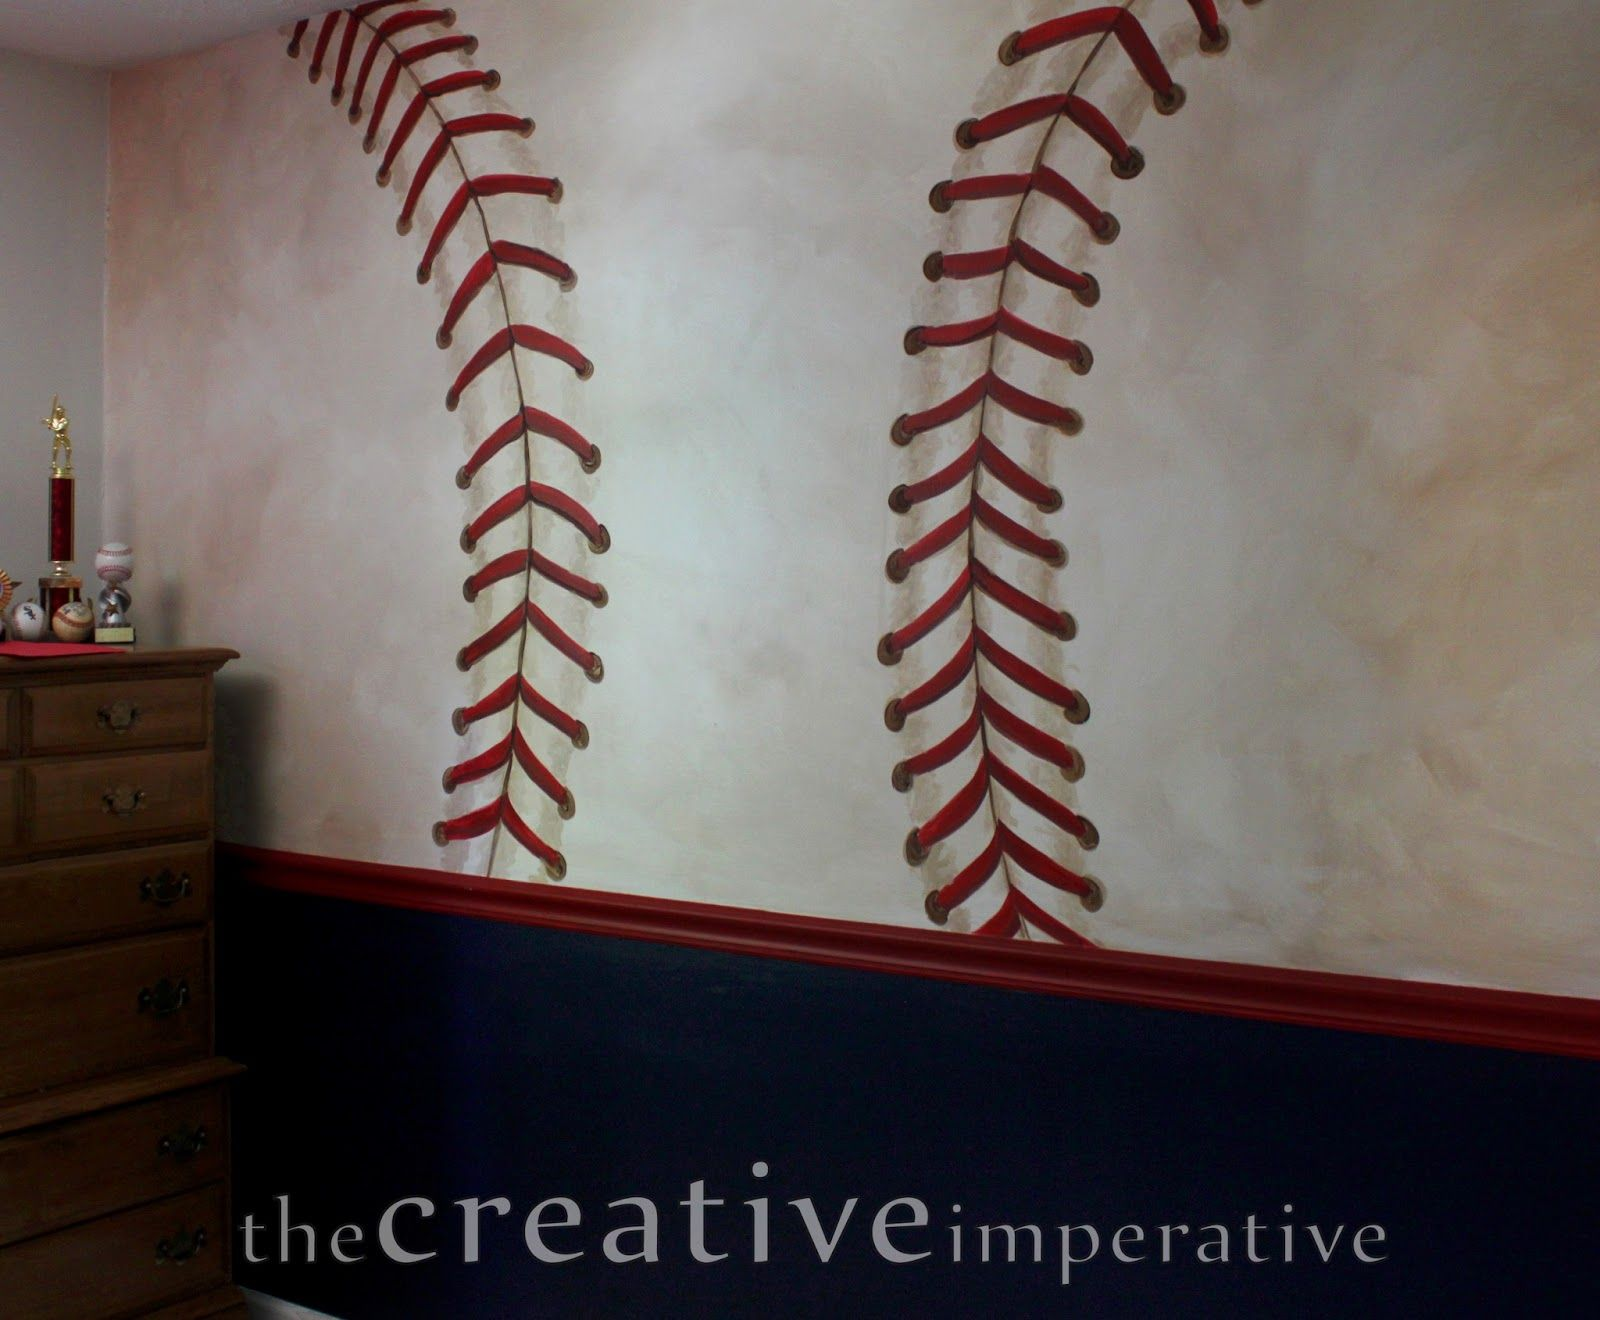 The Creative Imperative Some Yankees And Nationals Baseball Murals Paint Stitching On Walls For Boys Room